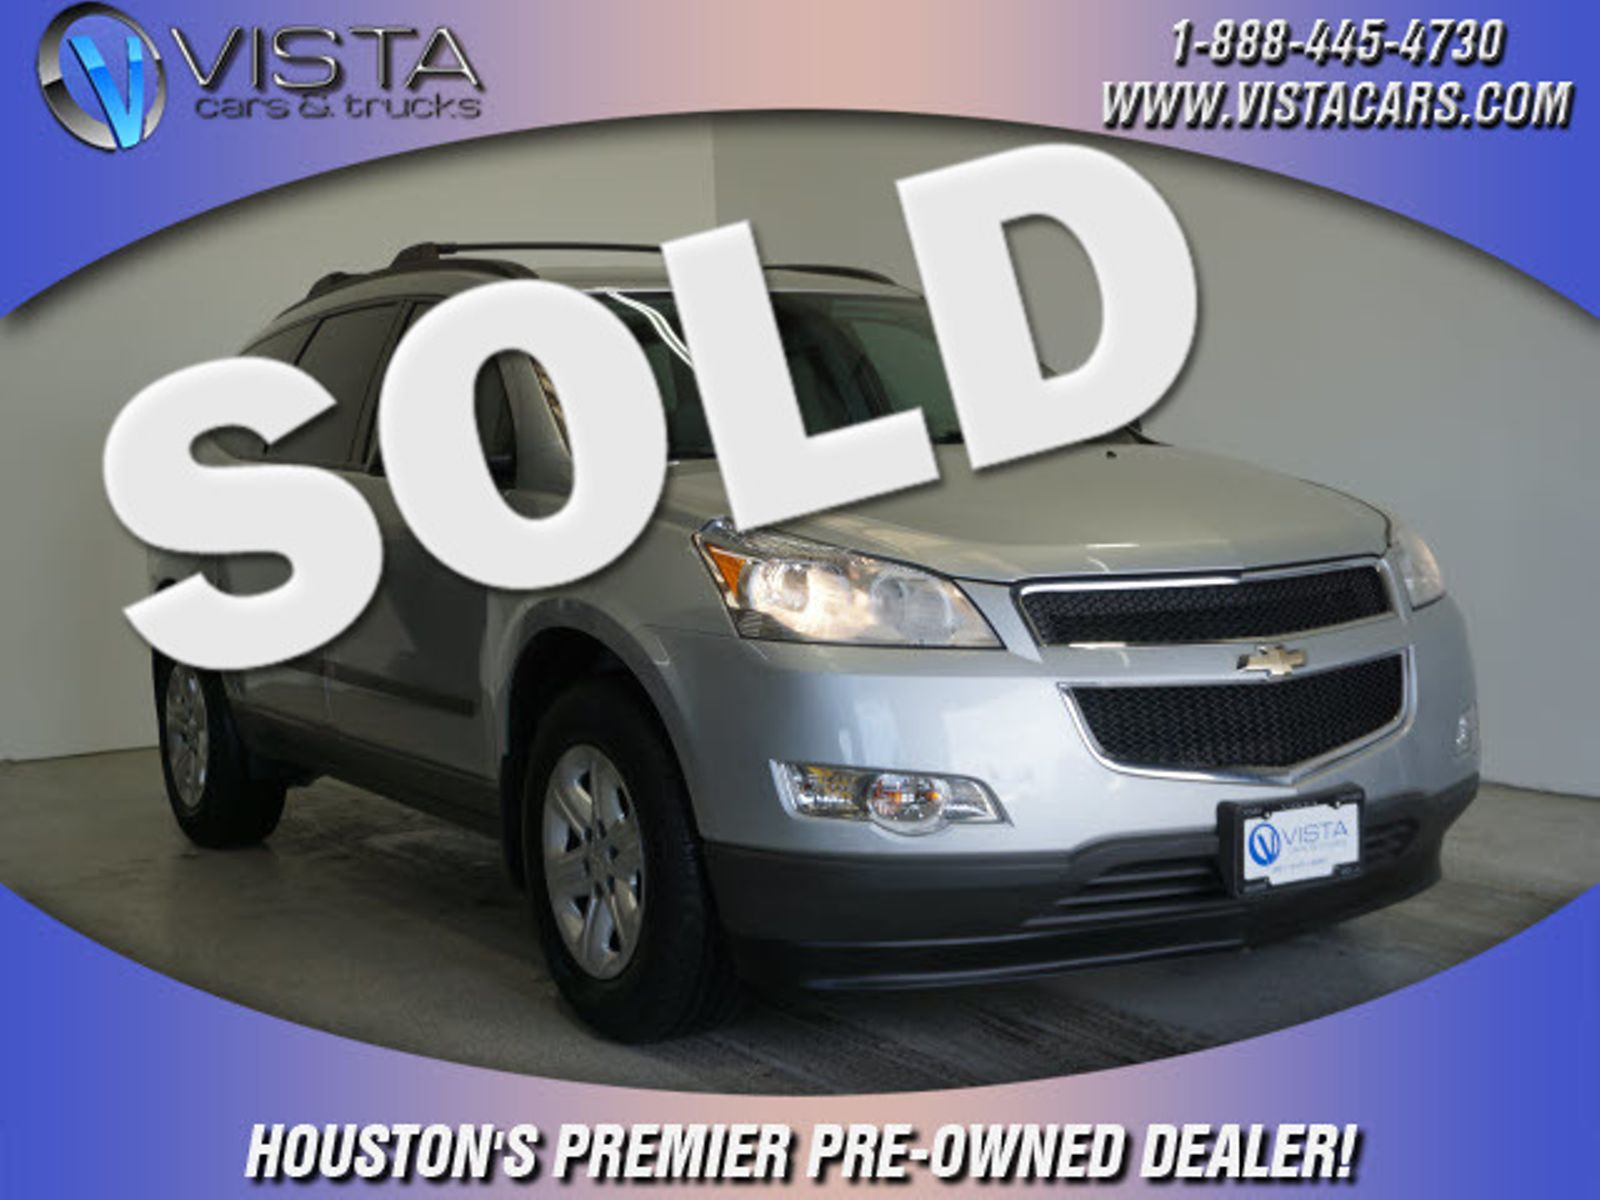 medium resolution of 2012 chevrolet traverse ls city texas vista cars and trucks in houston texas